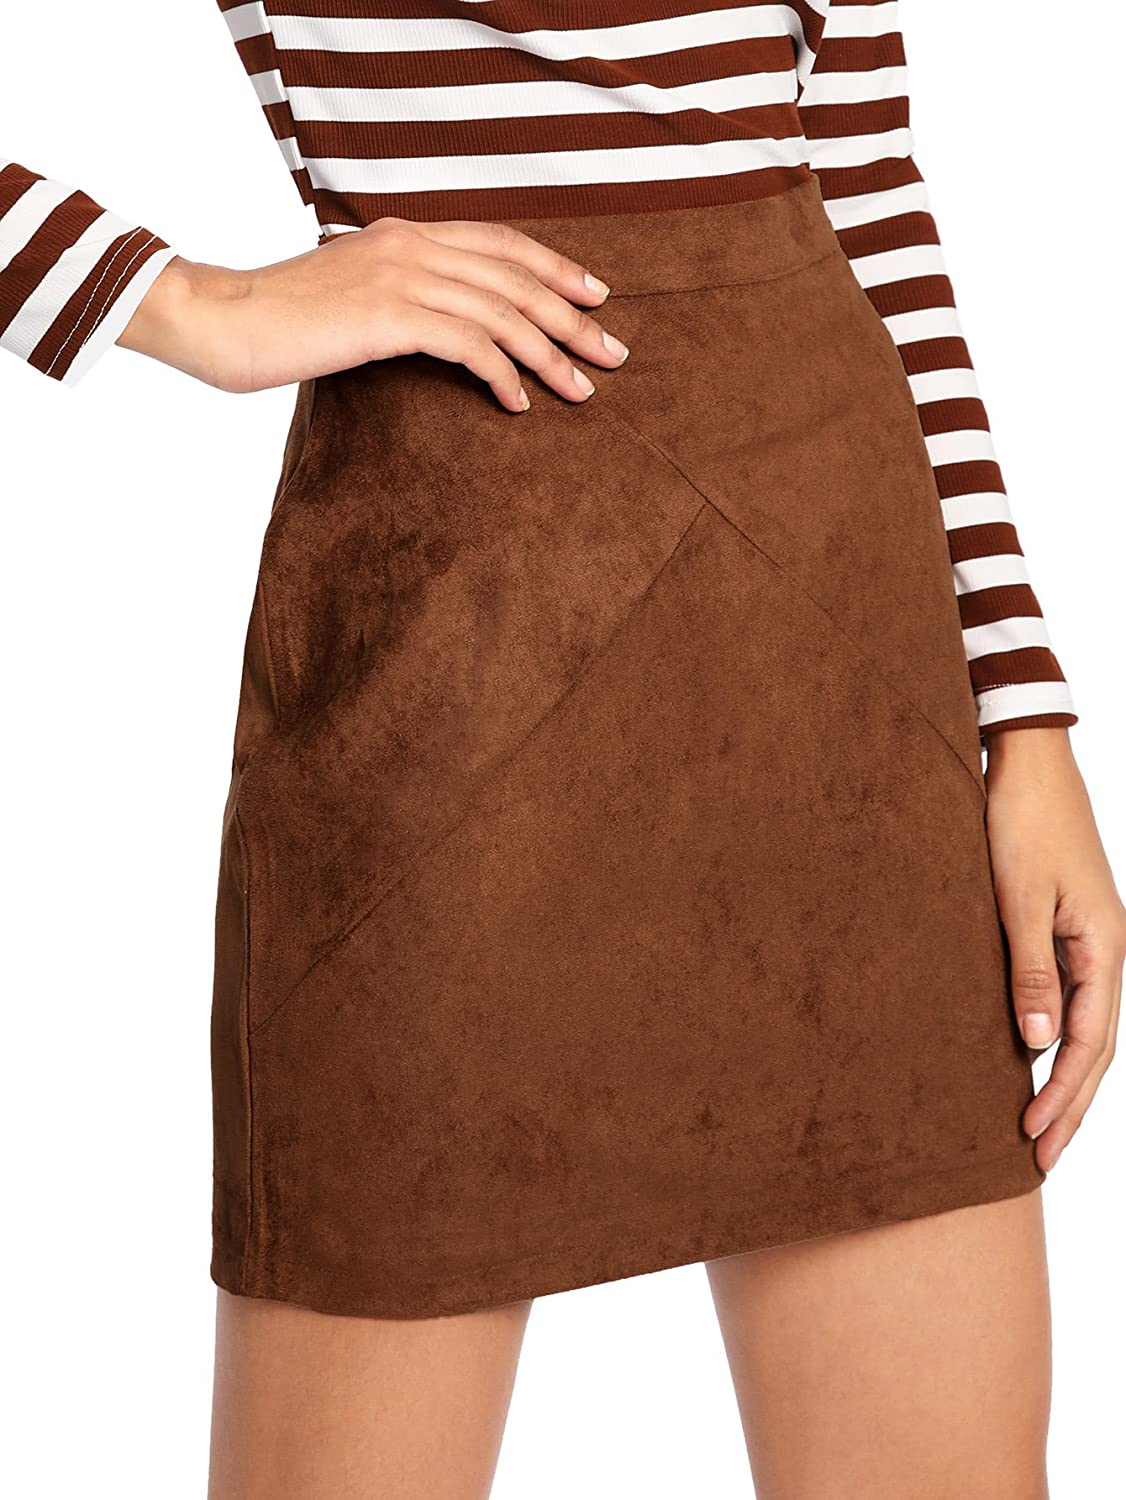 Hippie Dress | Long, Boho, Vintage, 70s MAKEMECHIC Womens Zipper Back A-line Bodycon Mini Faux Suede Corduroy Skirt $14.99 AT vintagedancer.com